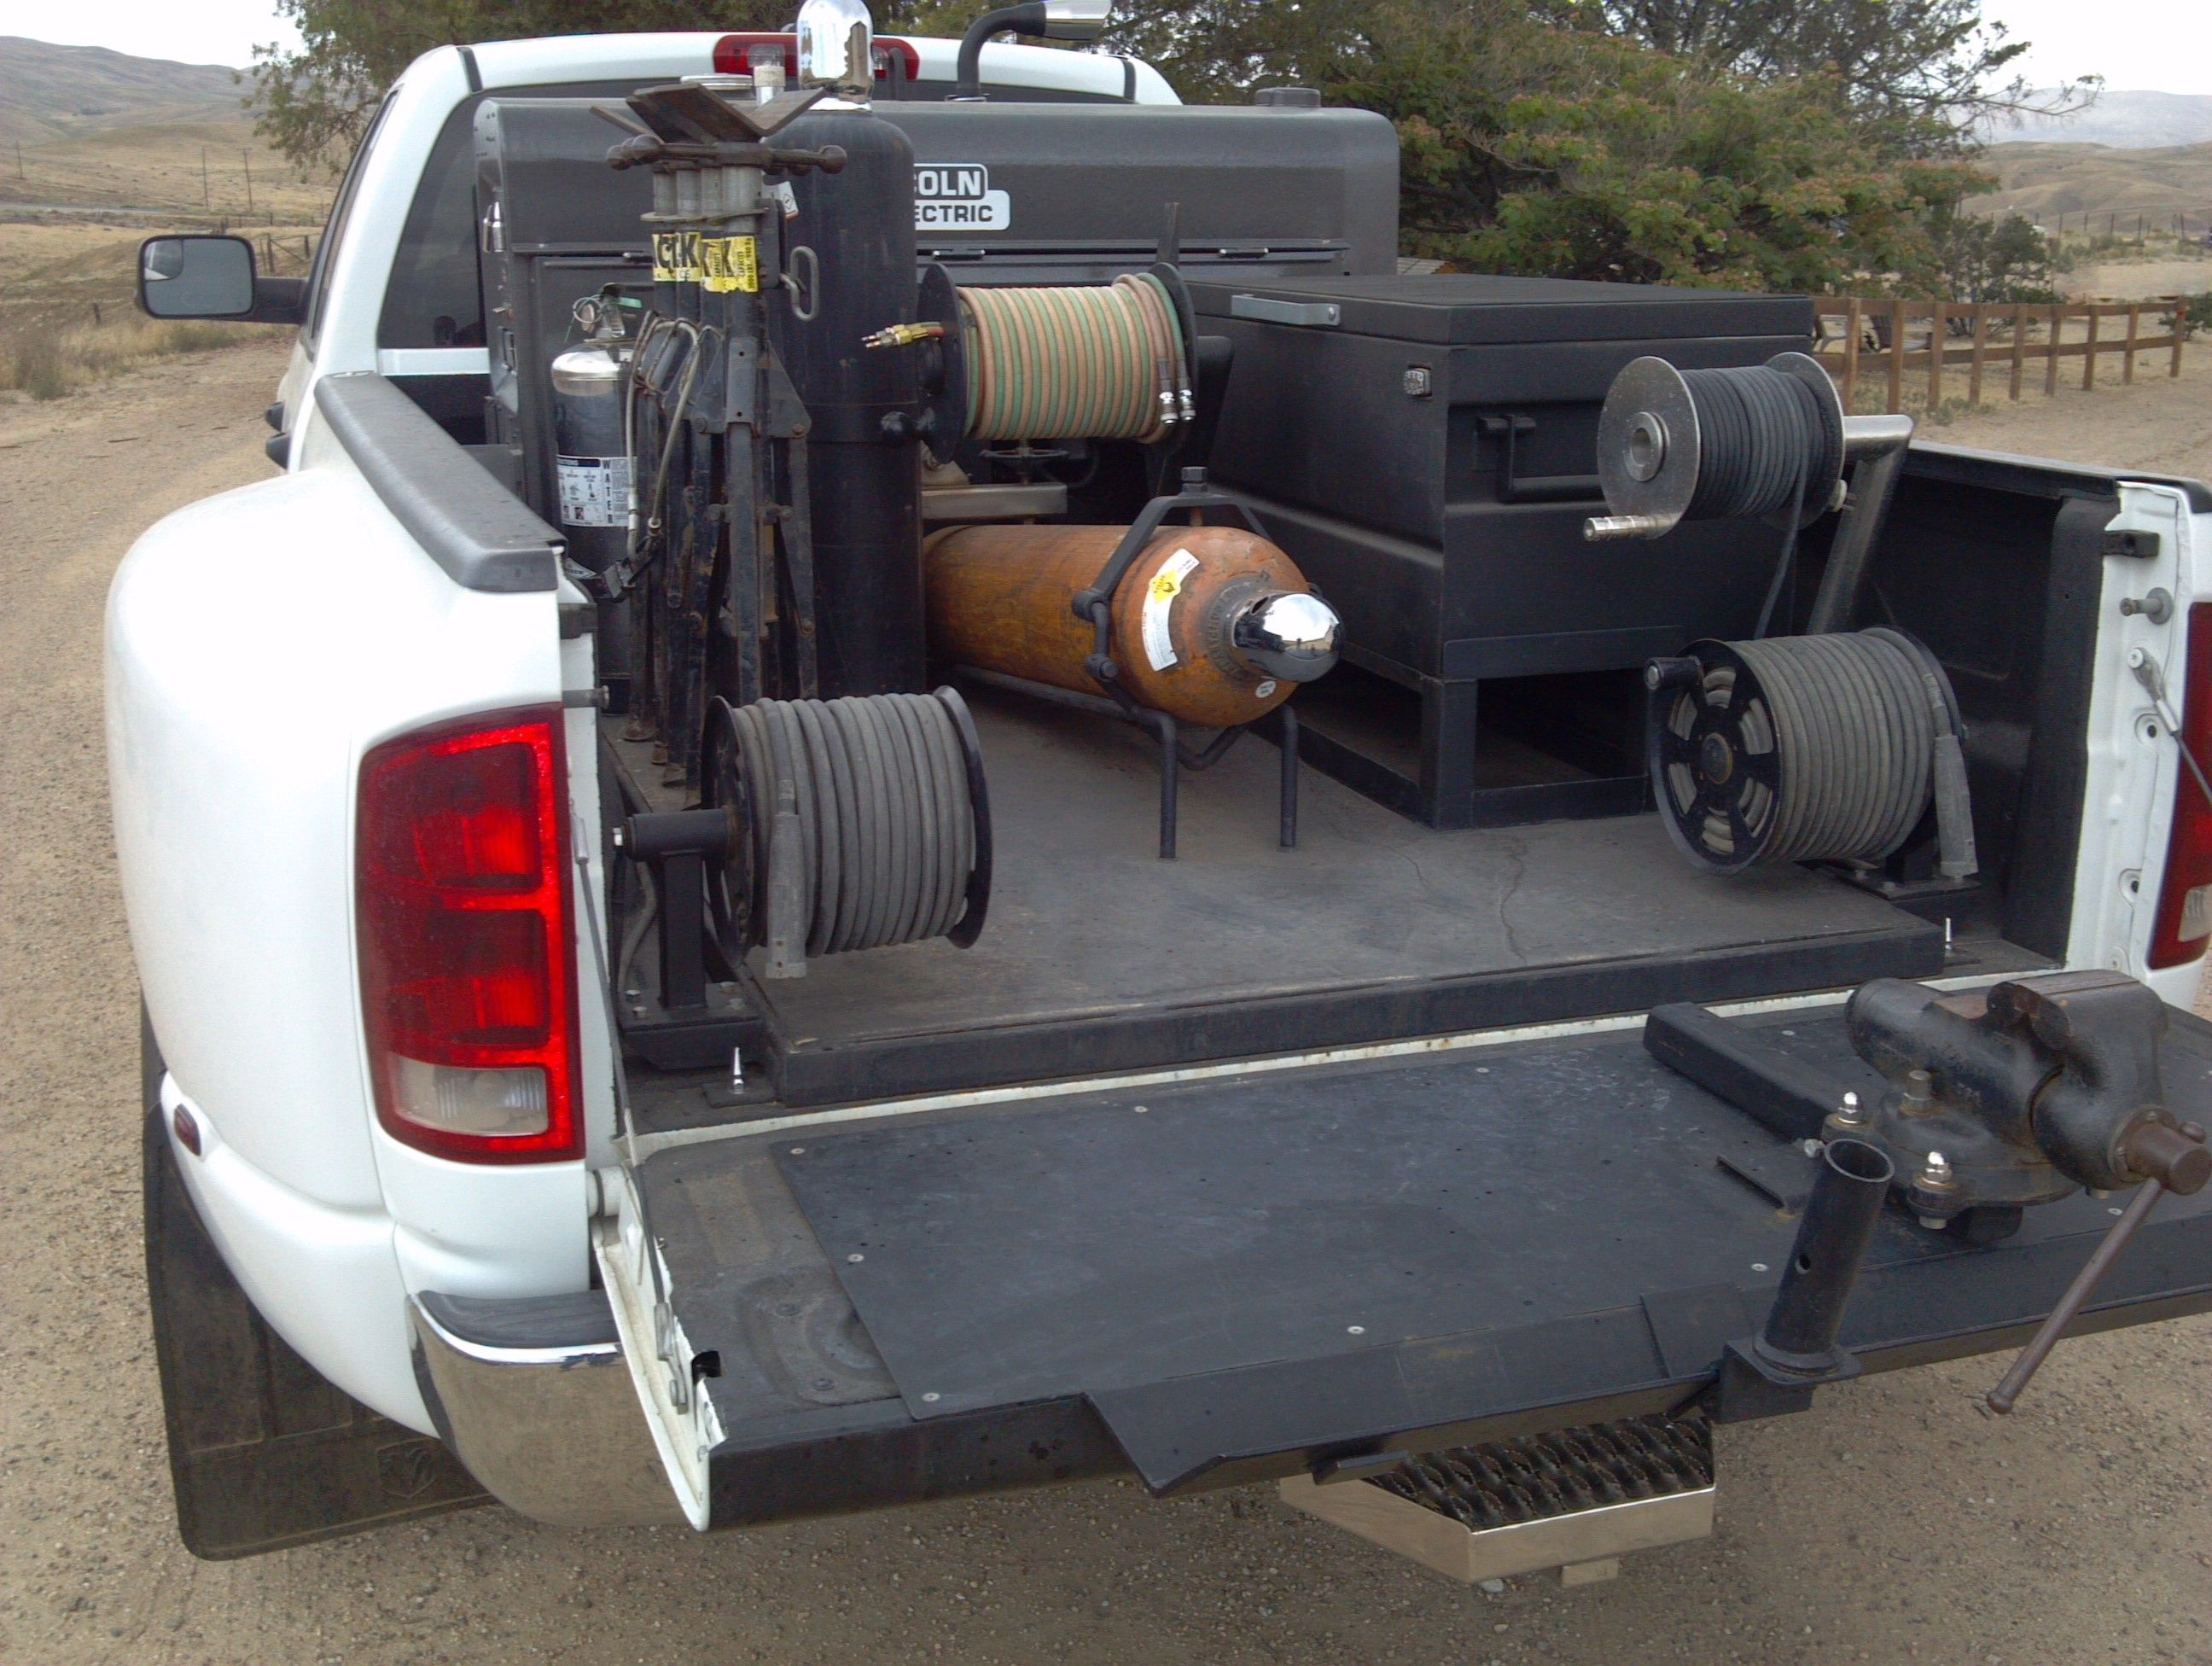 2006 Dodge ram 3500 welding truck with a classic 300D